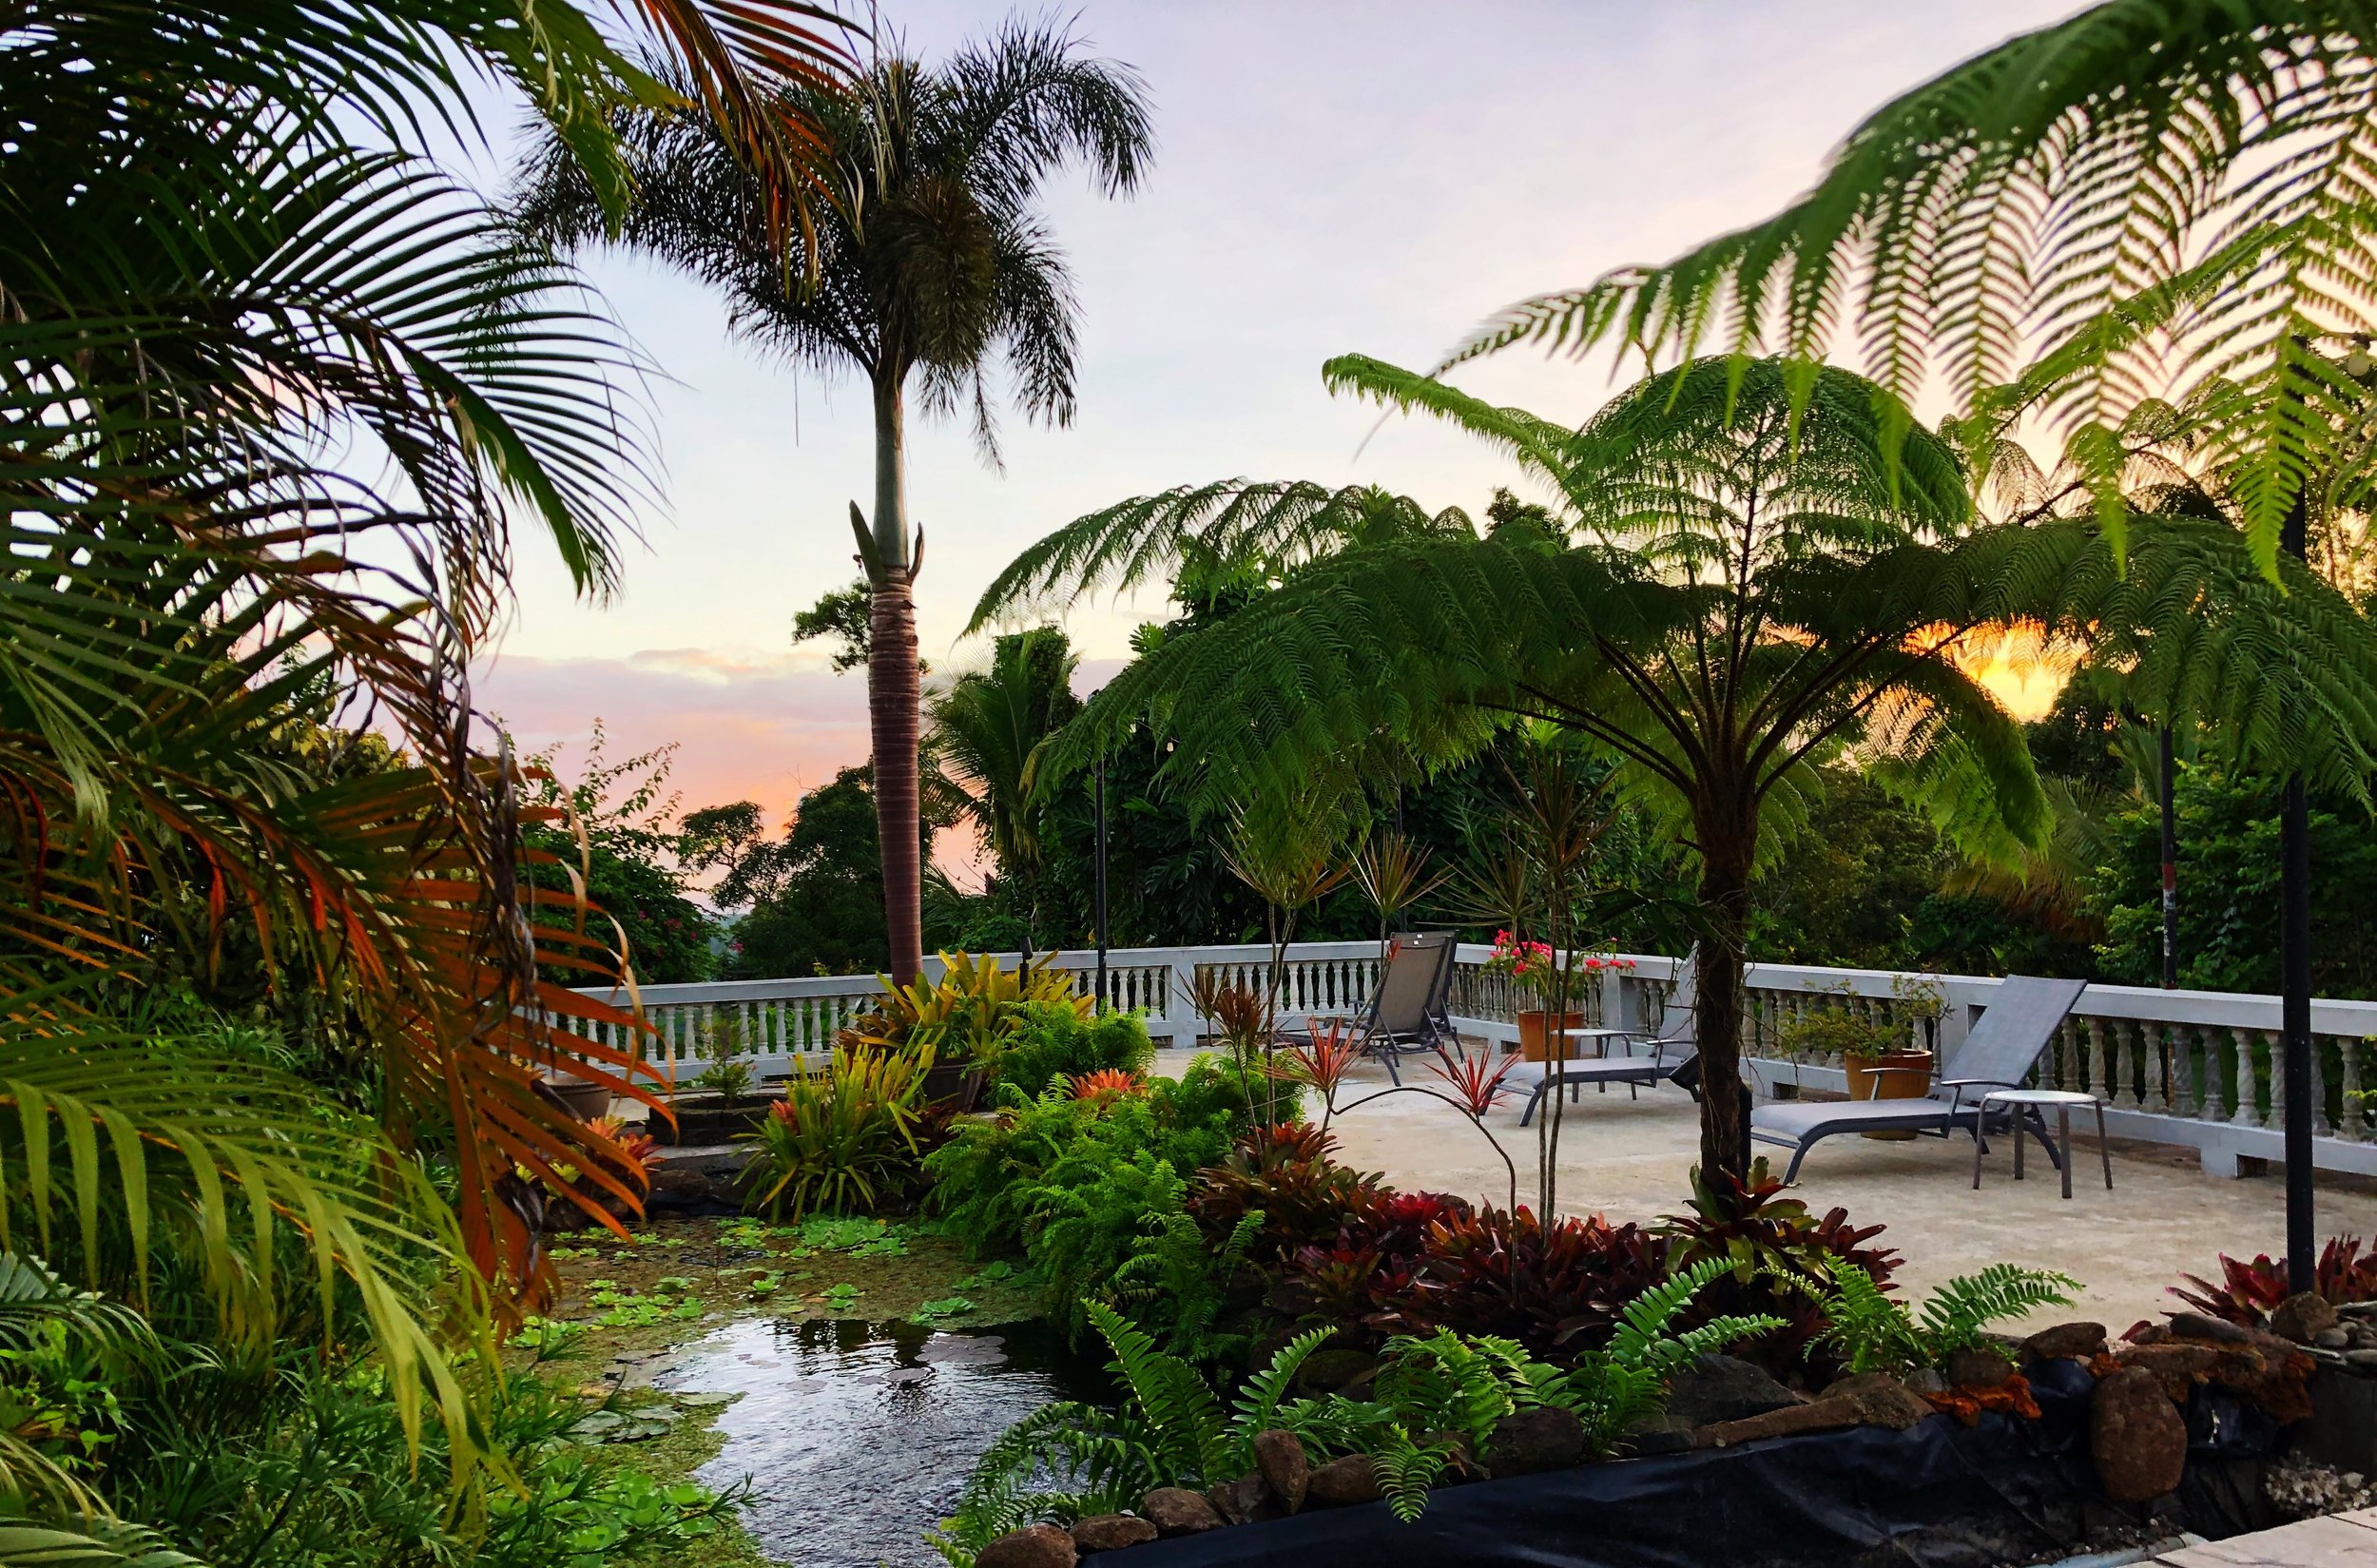 Relax by our koi pond and enjoy the sunrise.